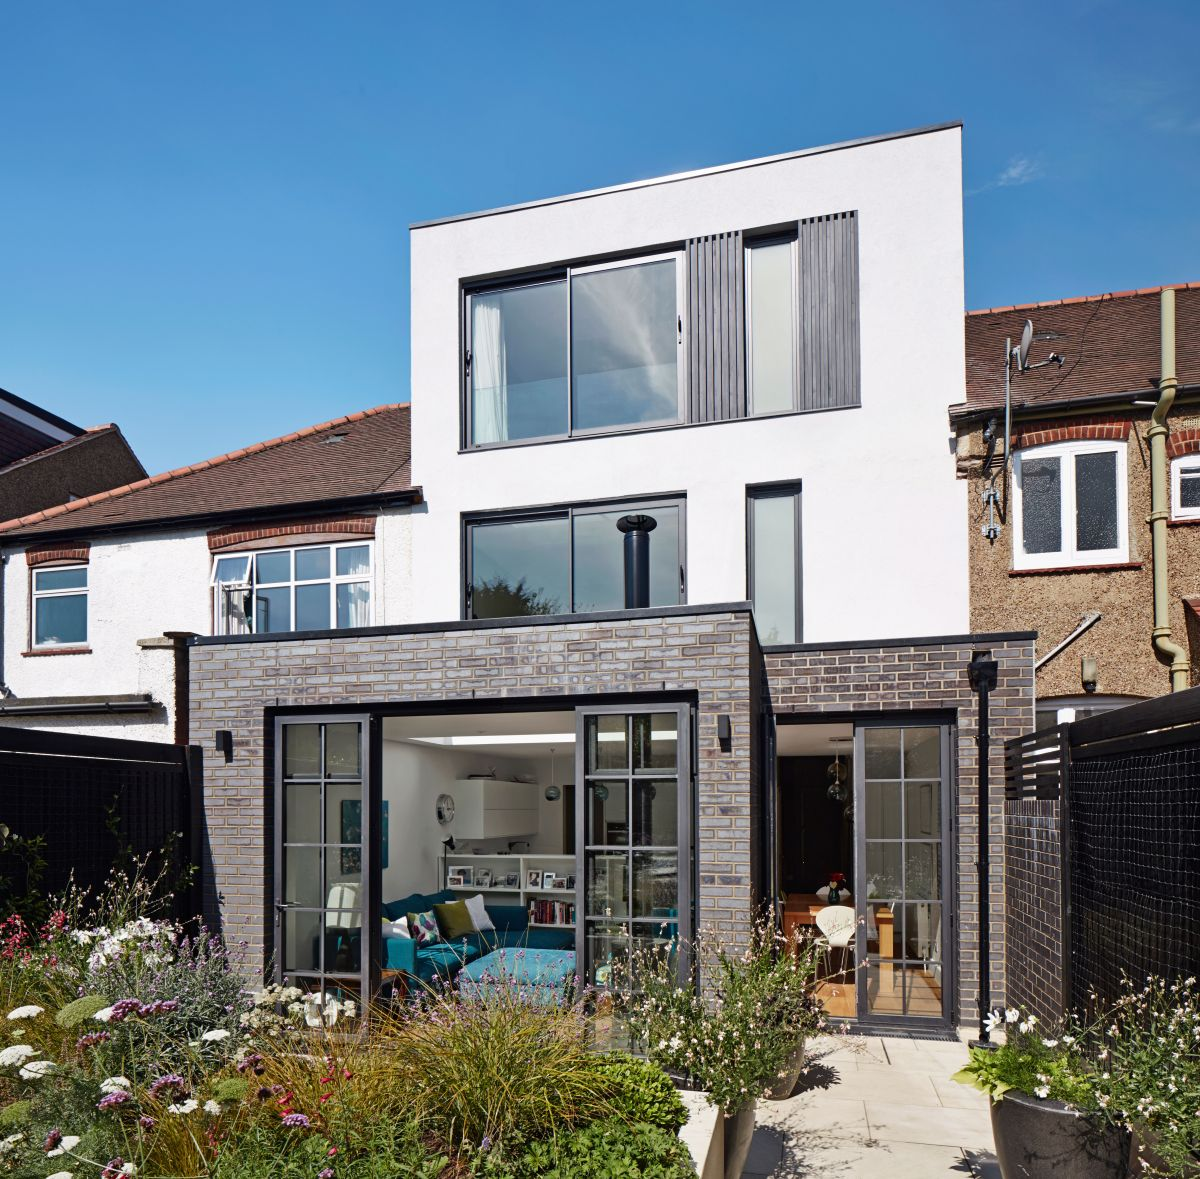 14 House Extension Ideas On The Cheap: Clever Ways To